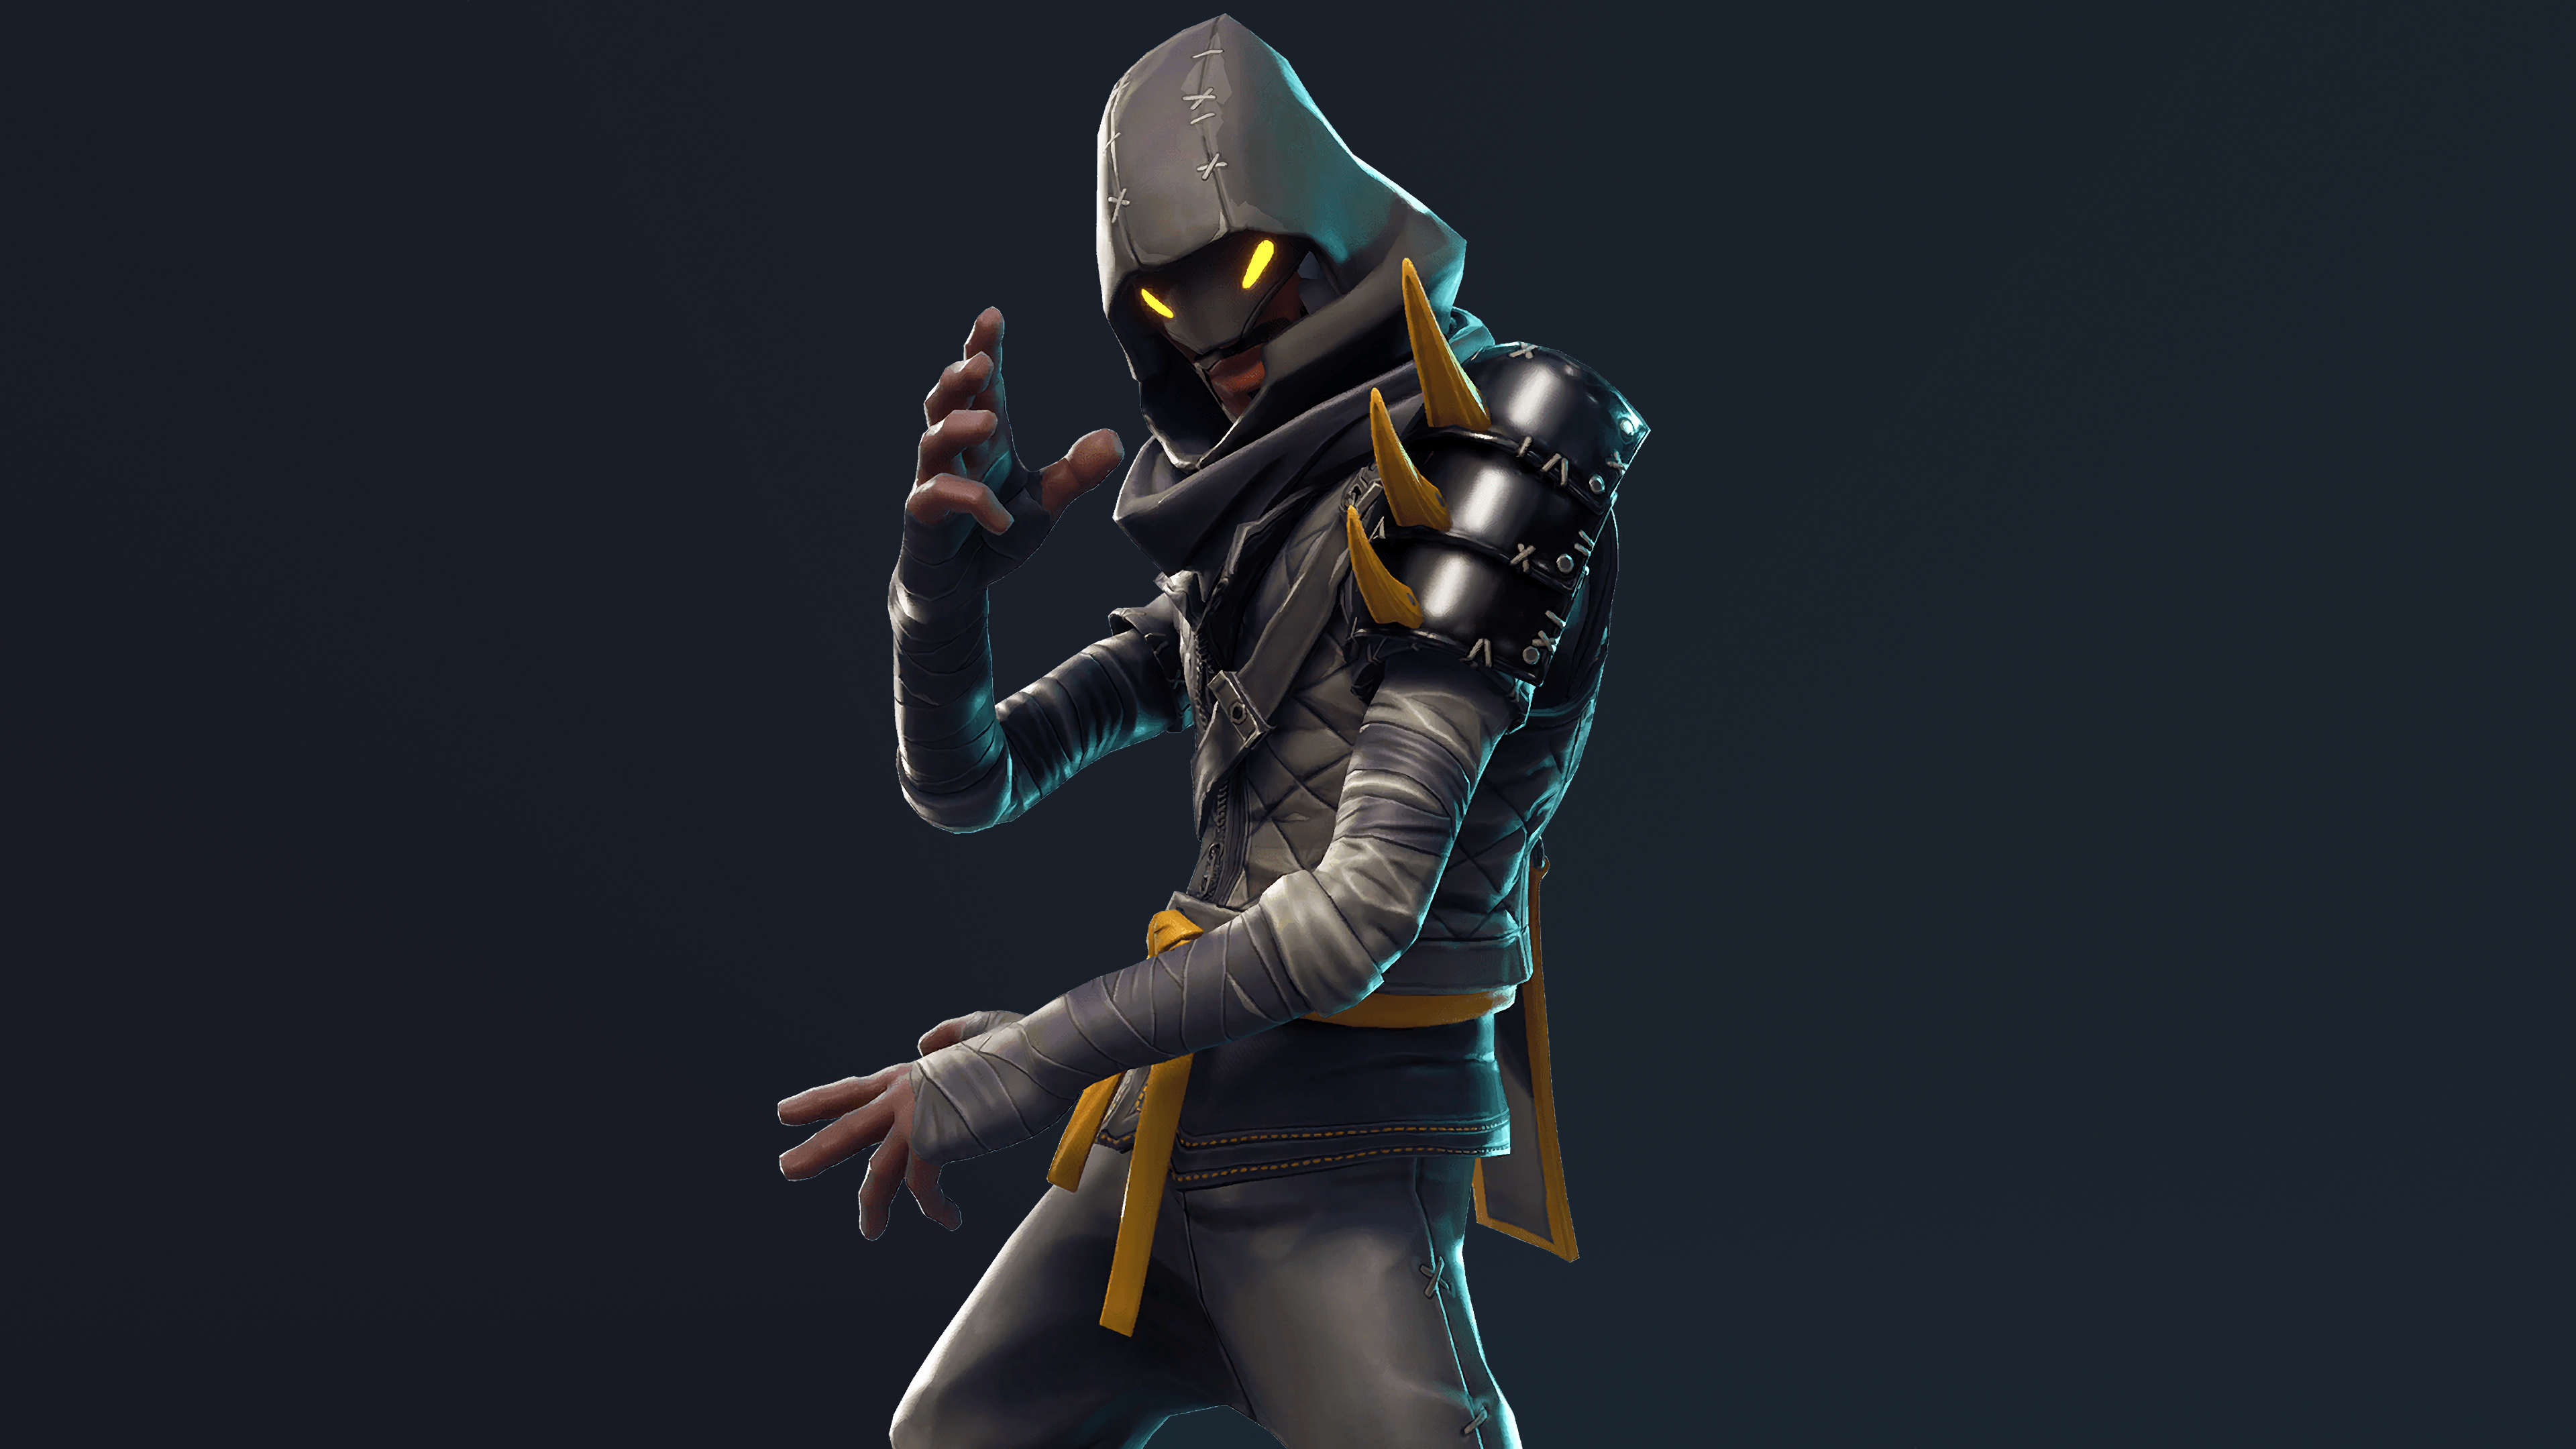 800x1280 cloaked star ninja fortnite battle royale nexus 7 - 4k fortnite wallpaper ...